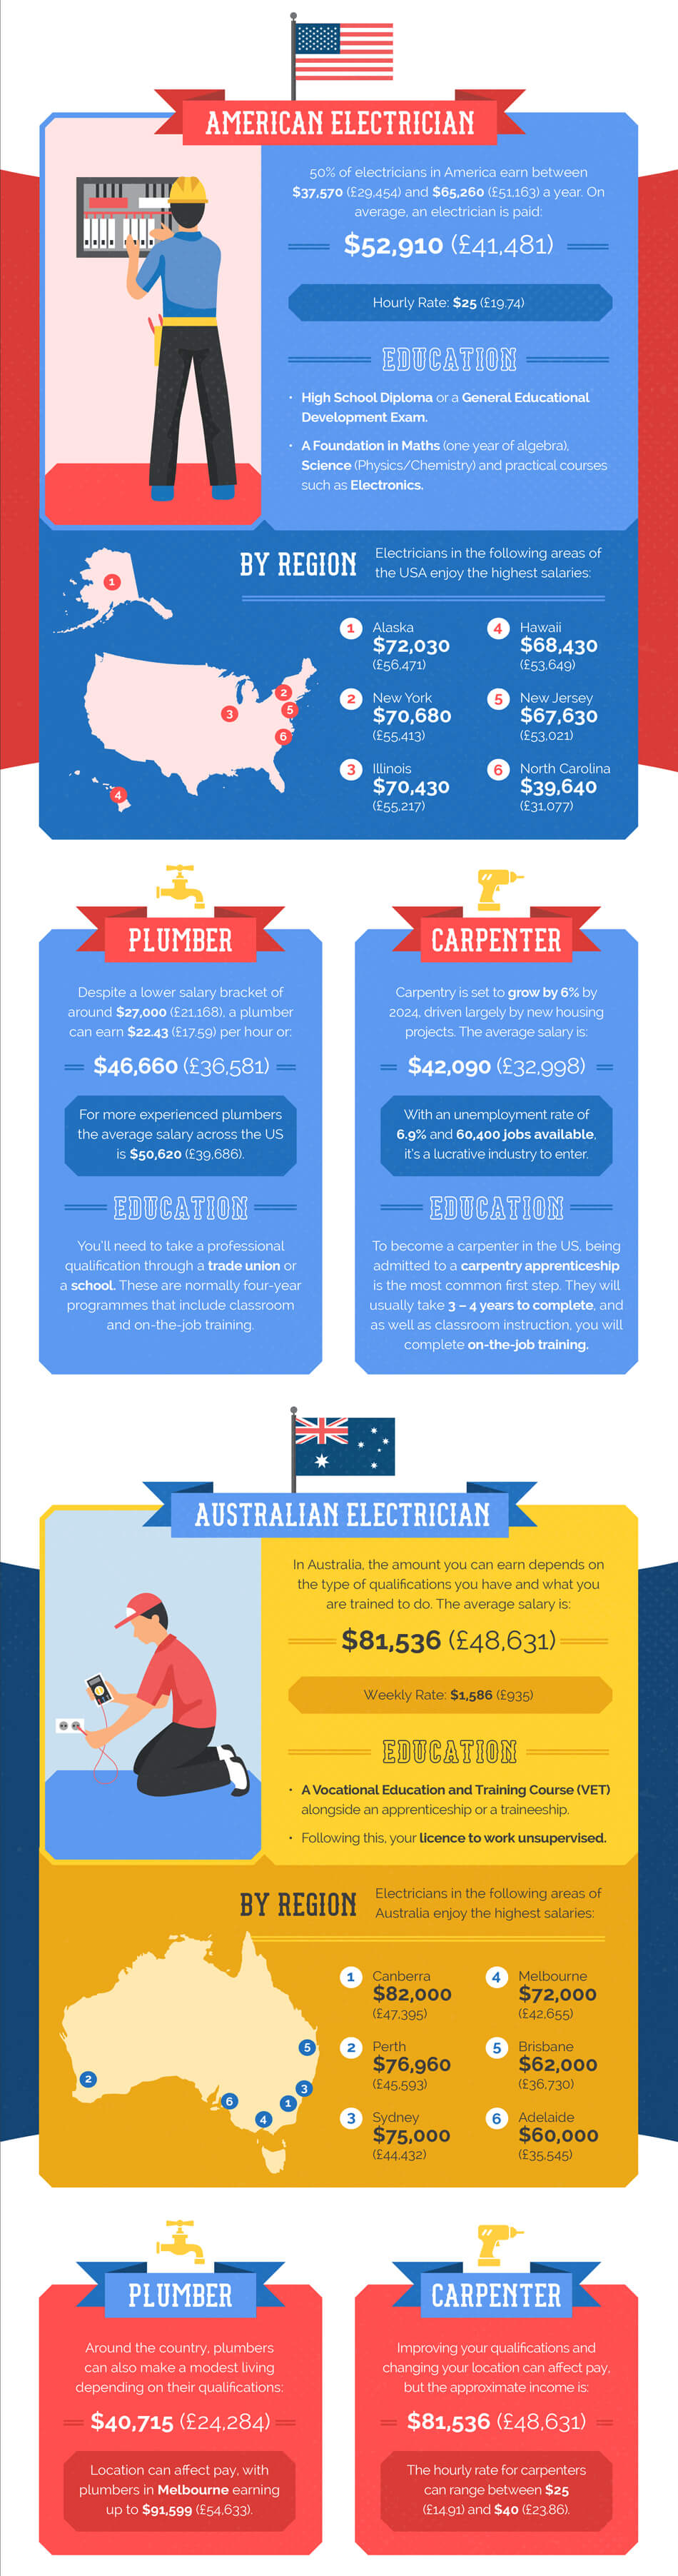 Tradesmen Around The World Infographic | Electrical Direct